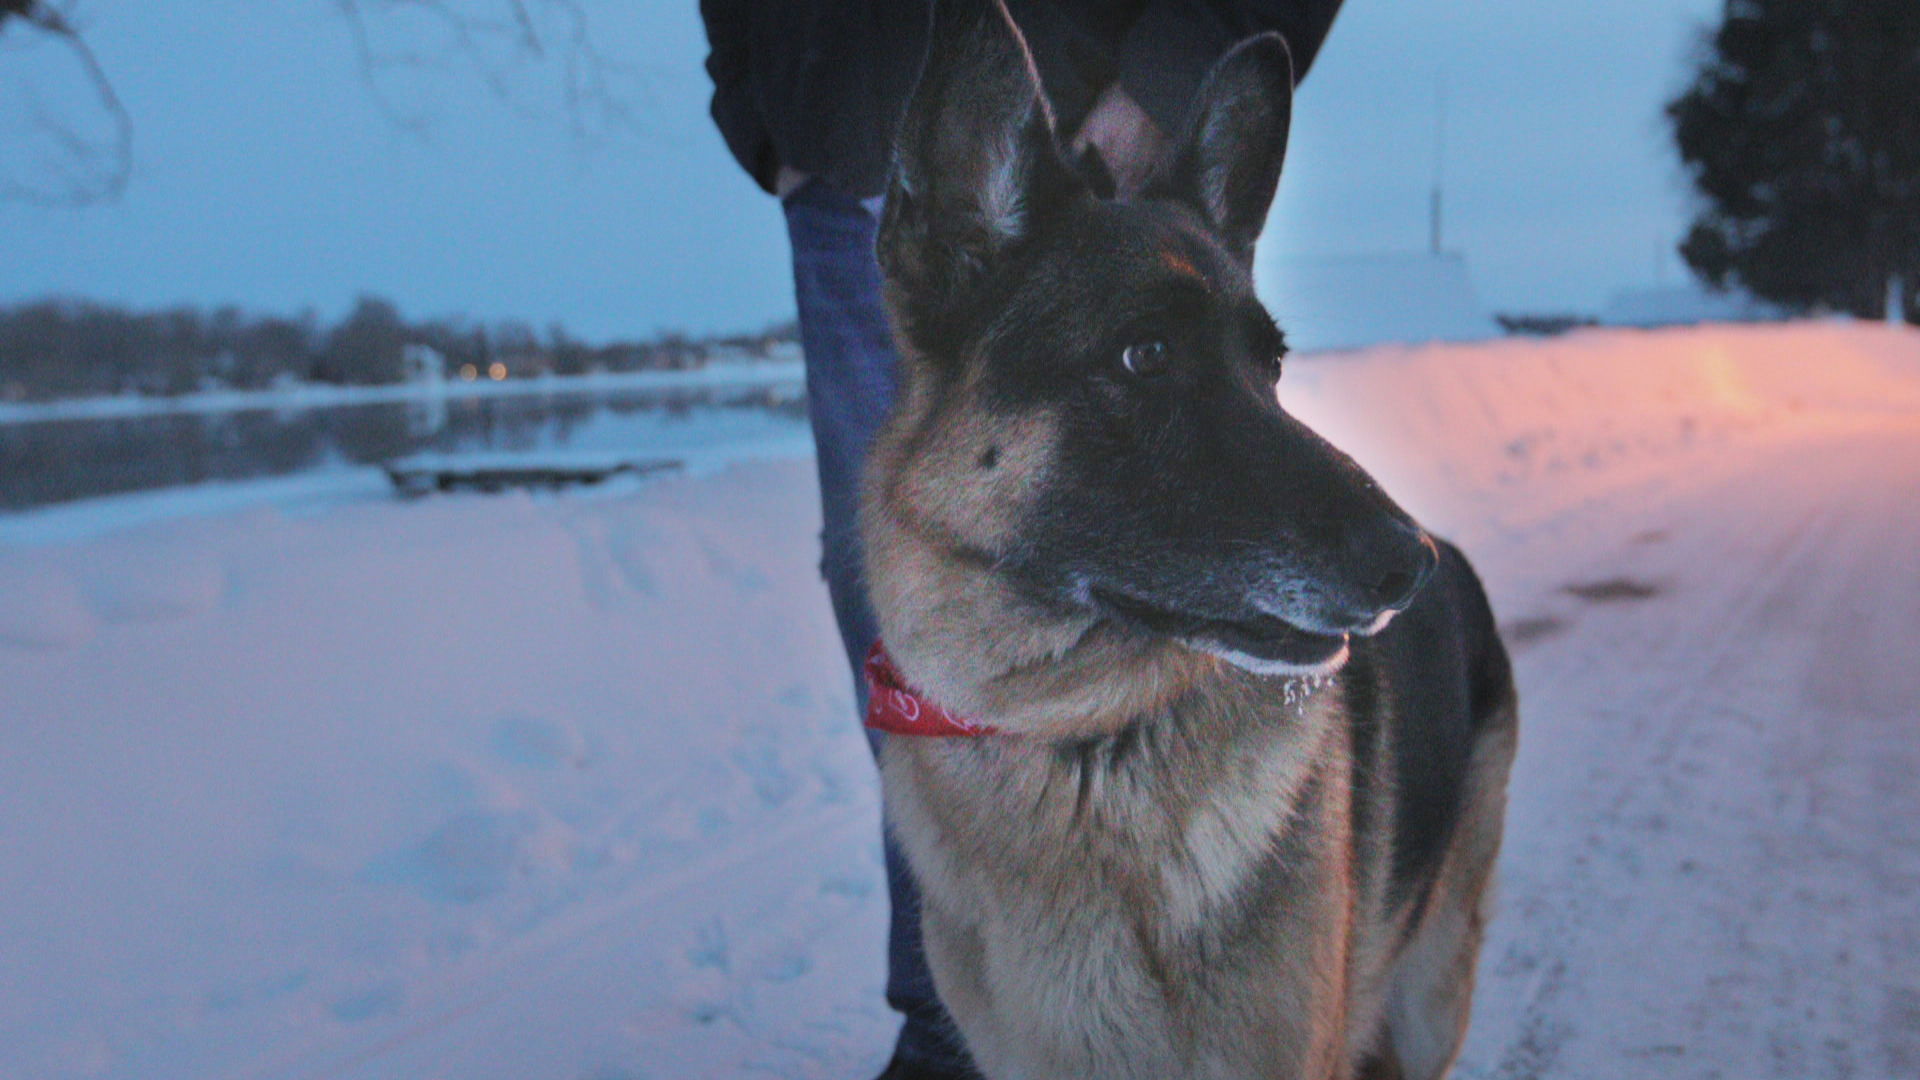 Moore says his dog, Tyson, saved his life when he was contemplating taking his own life. (John Badcock/CBC)